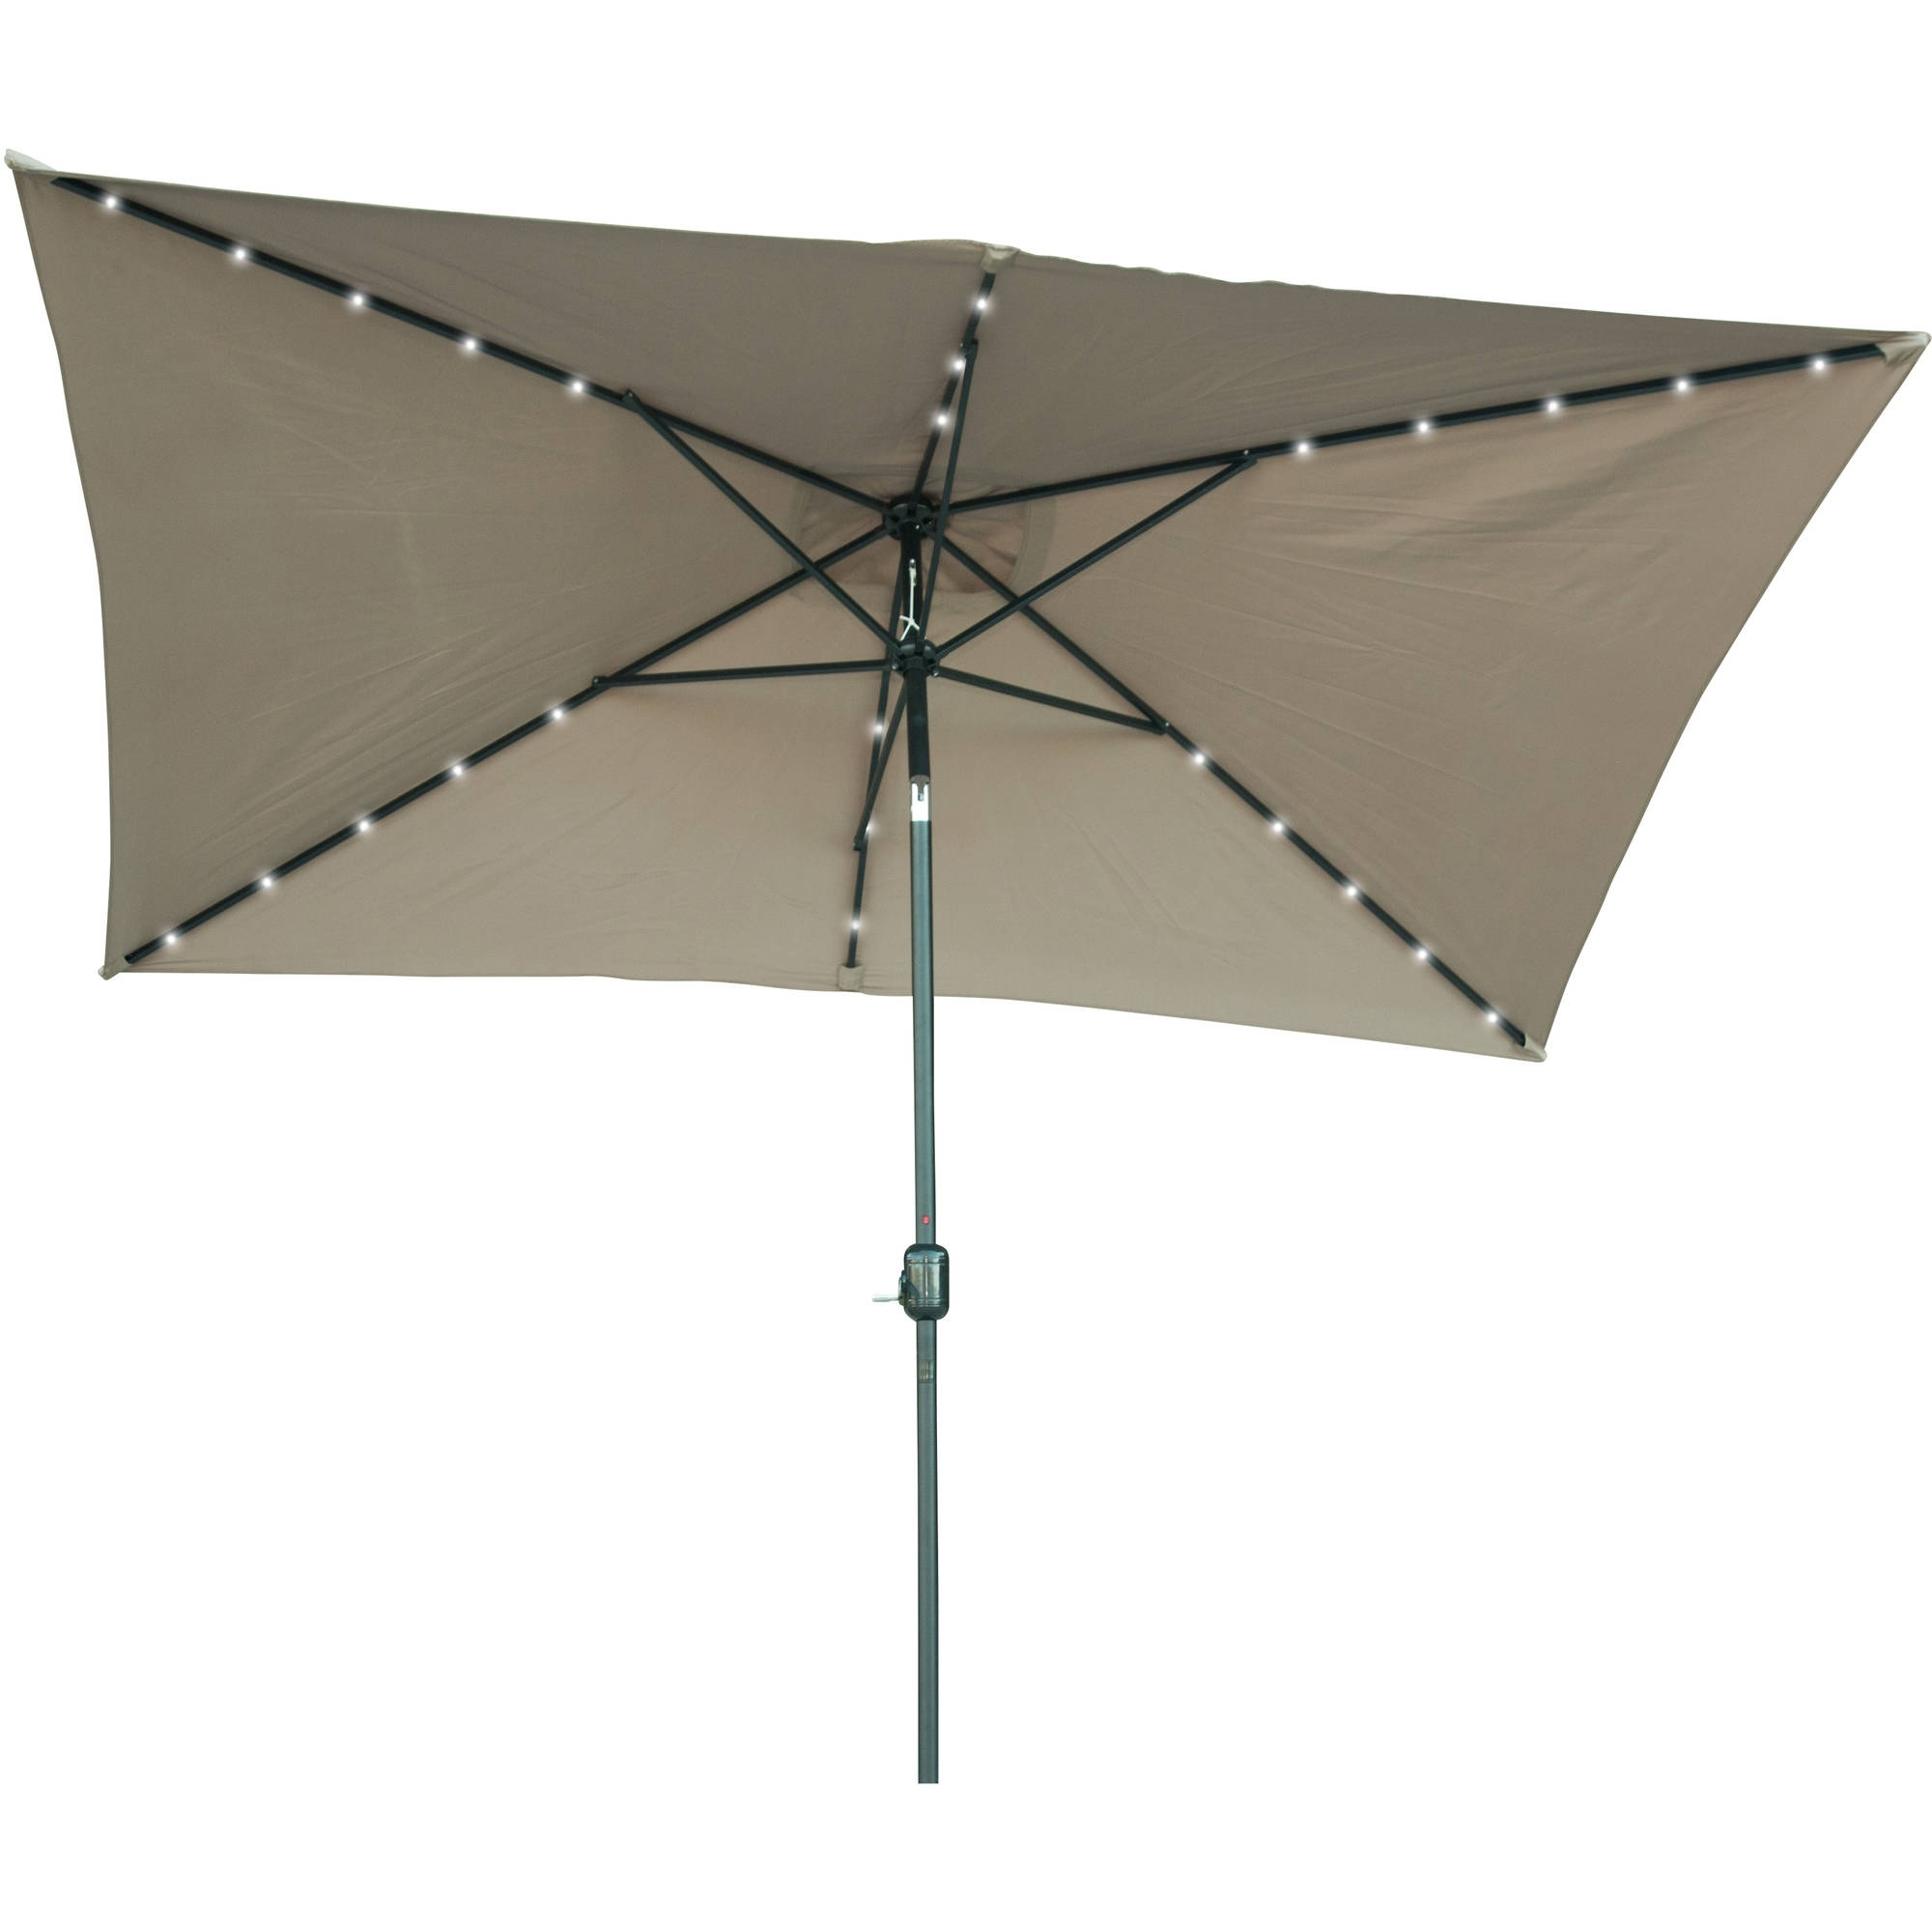 Newest Rectangular Solar Powered Led Lighted Patio Umbrella – 10' X 6.5 With Led Patio Umbrellas (Gallery 5 of 20)